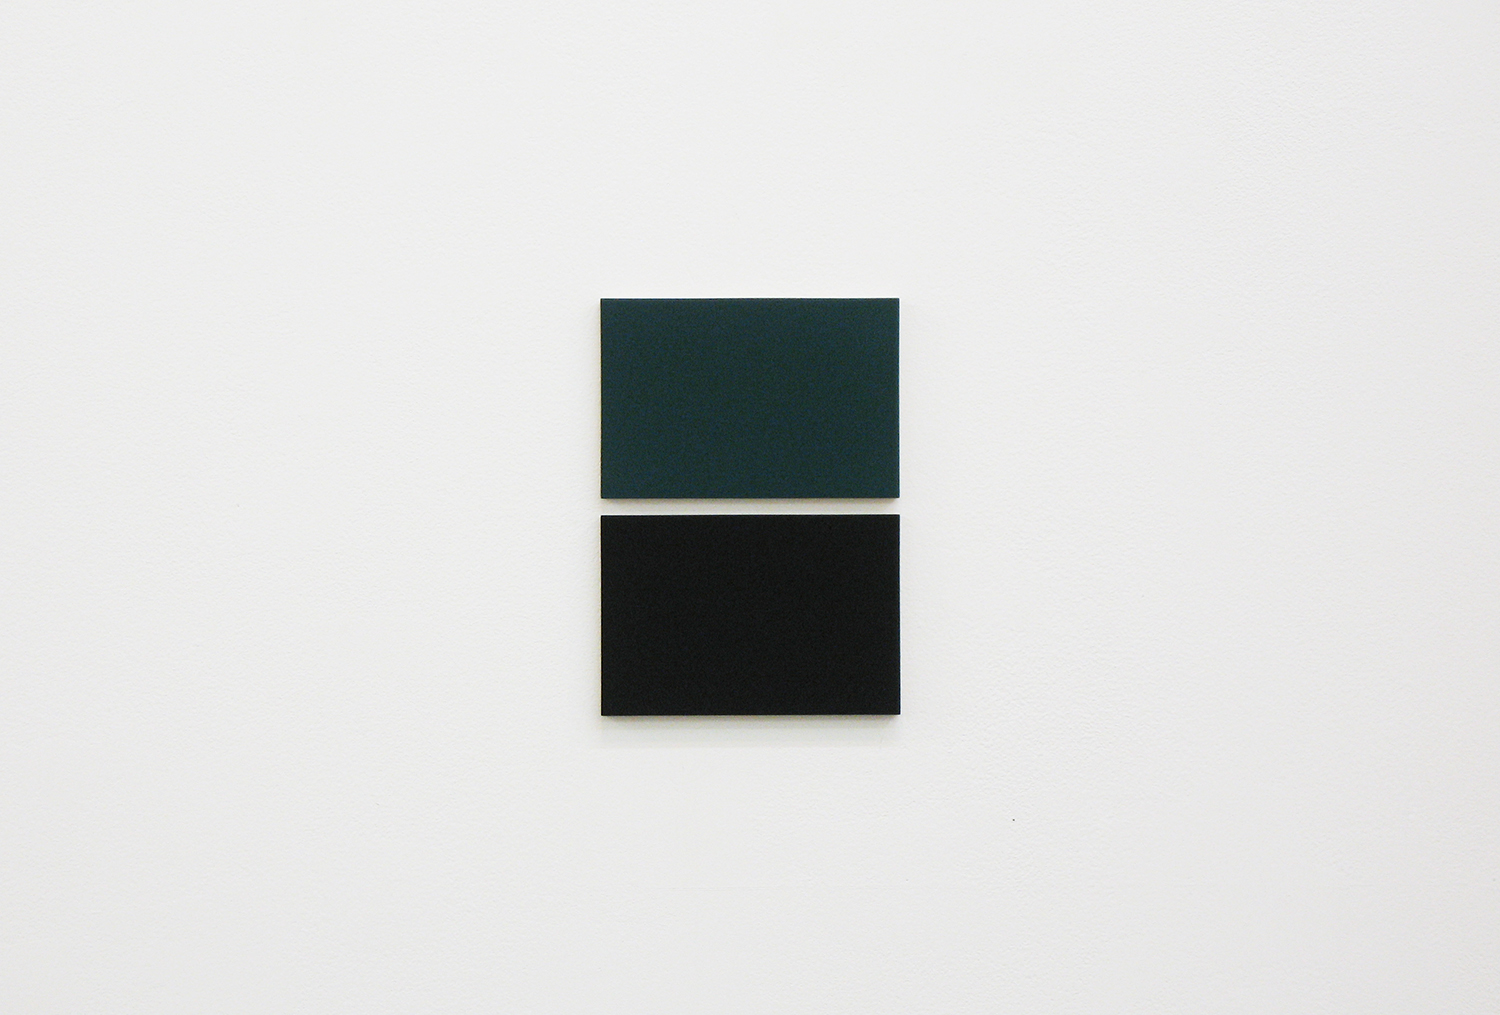 2col-09(green & black)casein, pigment on canvas & aluminum (2 parts, 10 x 15 cm each)